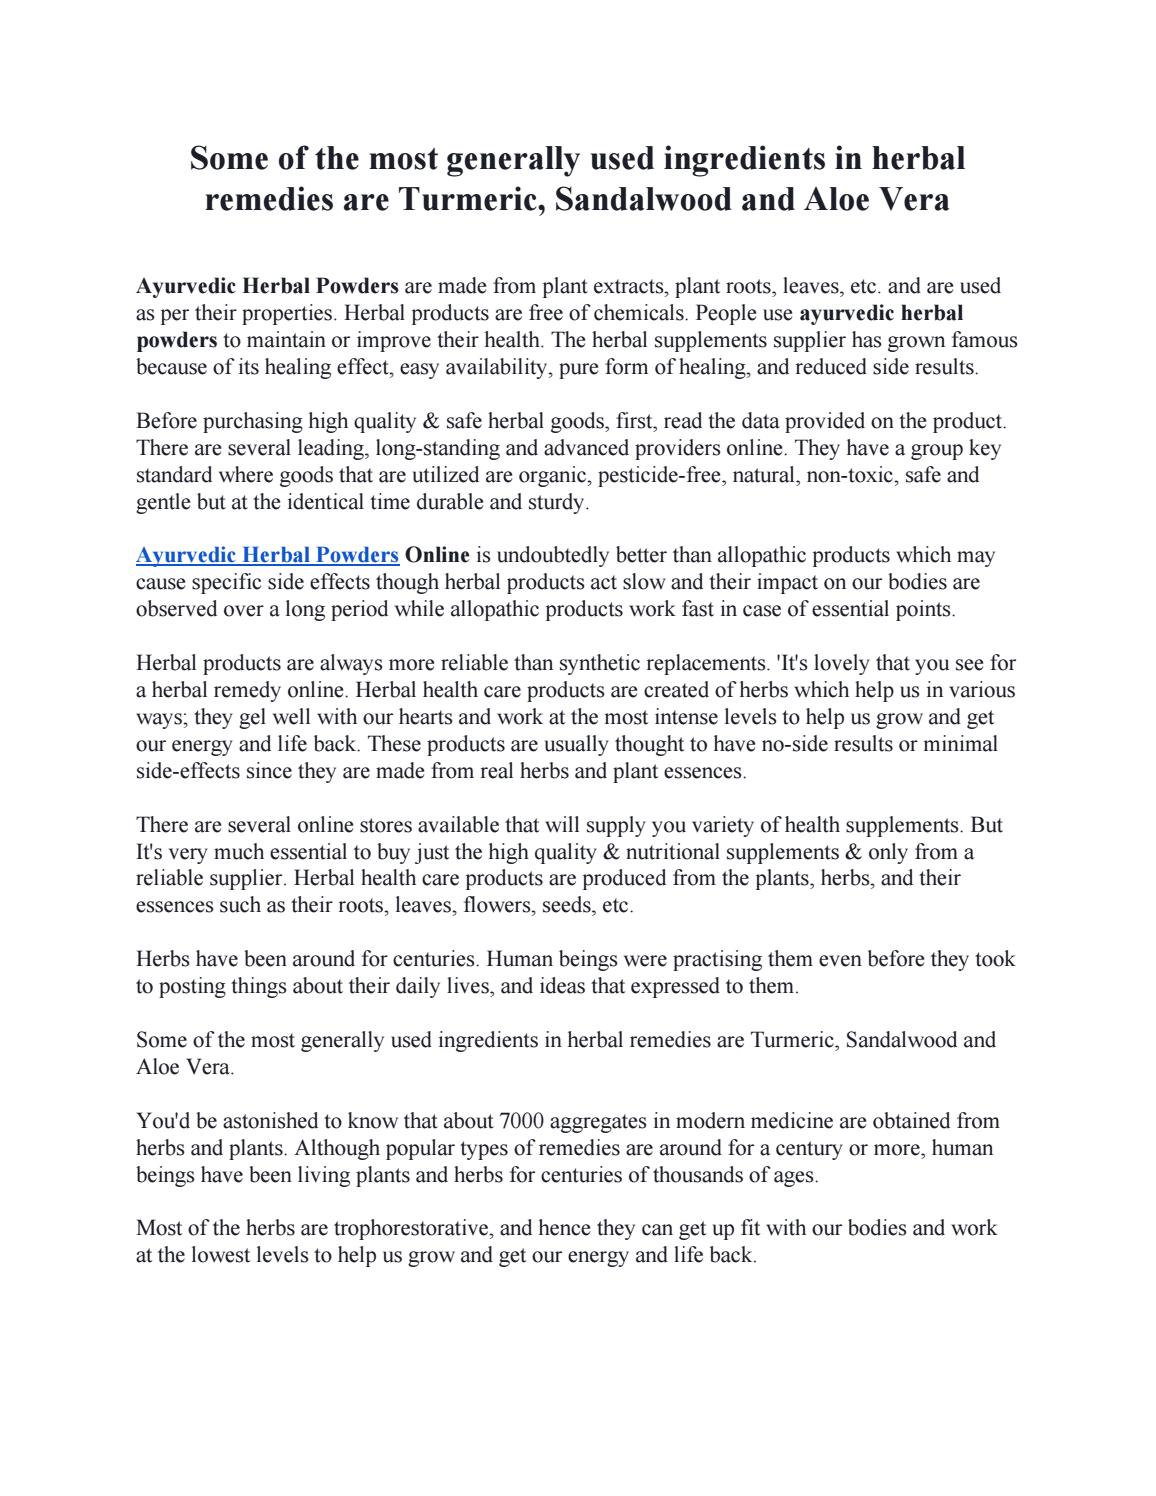 Some Of The Most Generally Used Ingredients In Herbal Remedies Are Turmeric Sandalwood And Aloe Ver By Amrita Davis Issuu